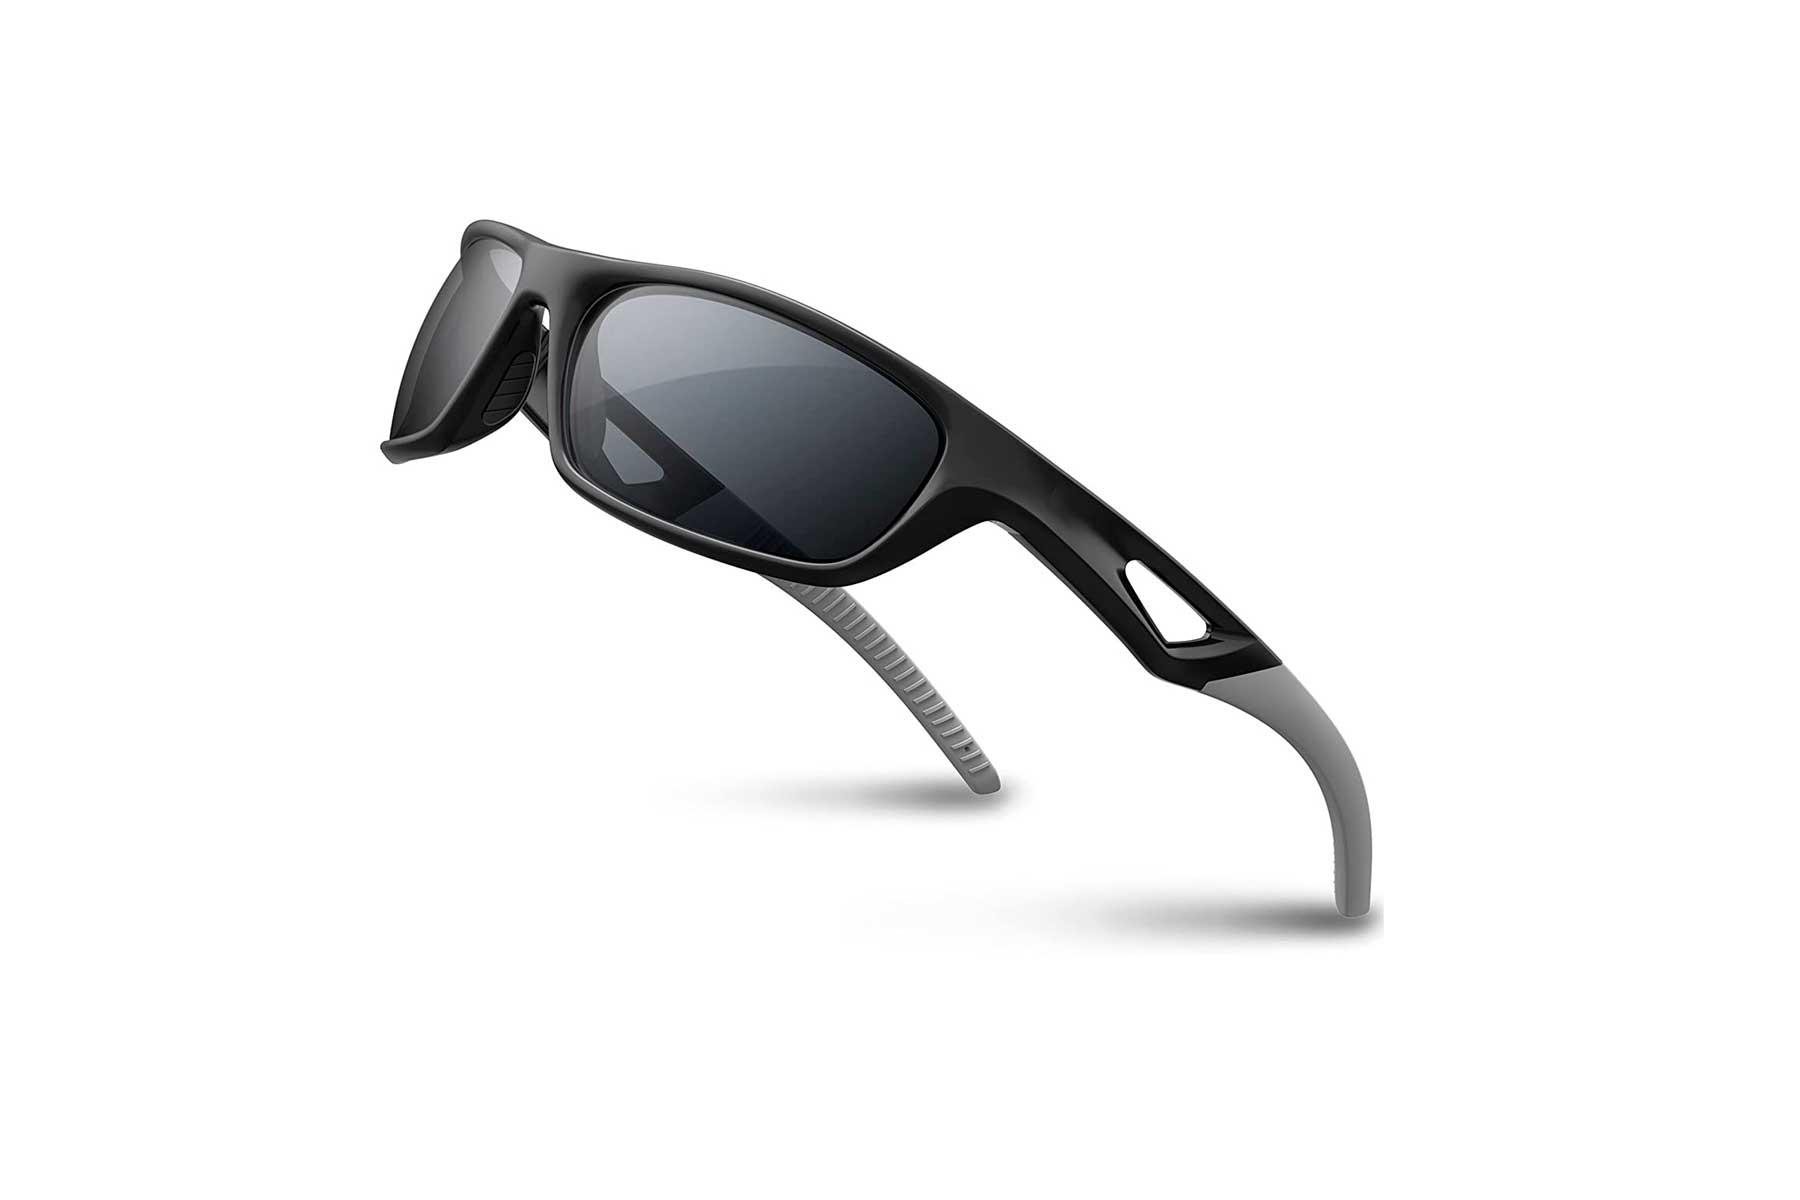 RIVBOS sunglasses in a black and silver sport style